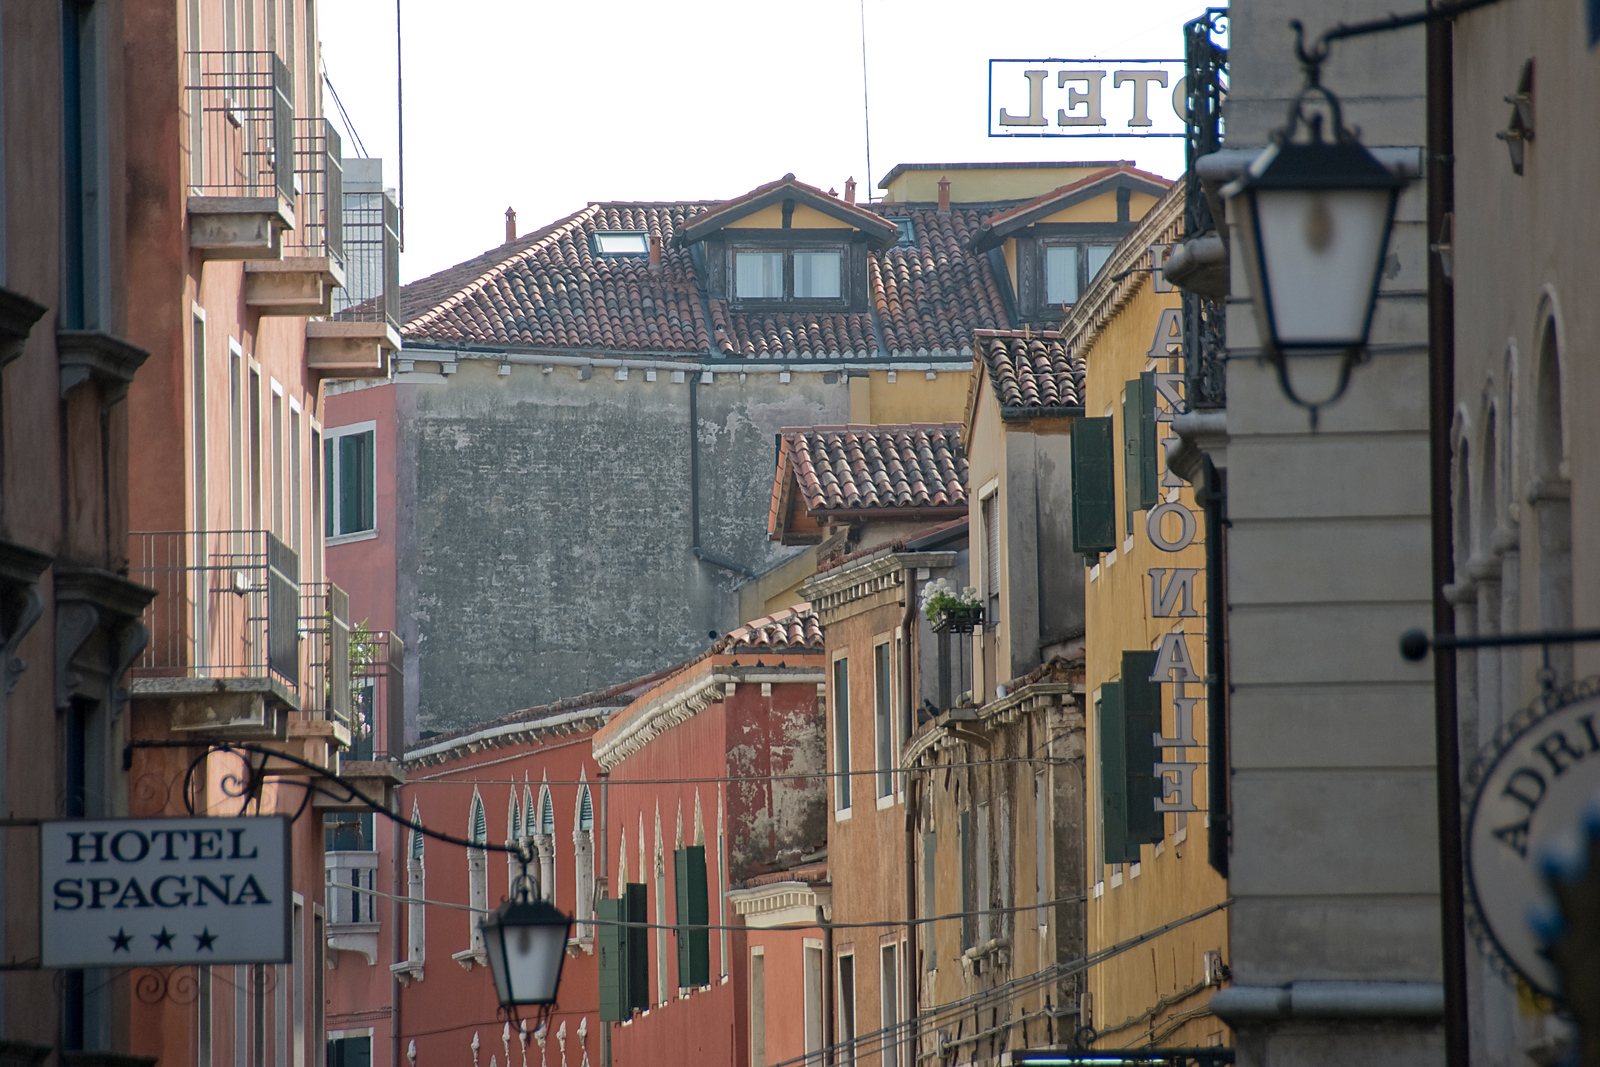 Row of buildings in an alley at Venice, Italy